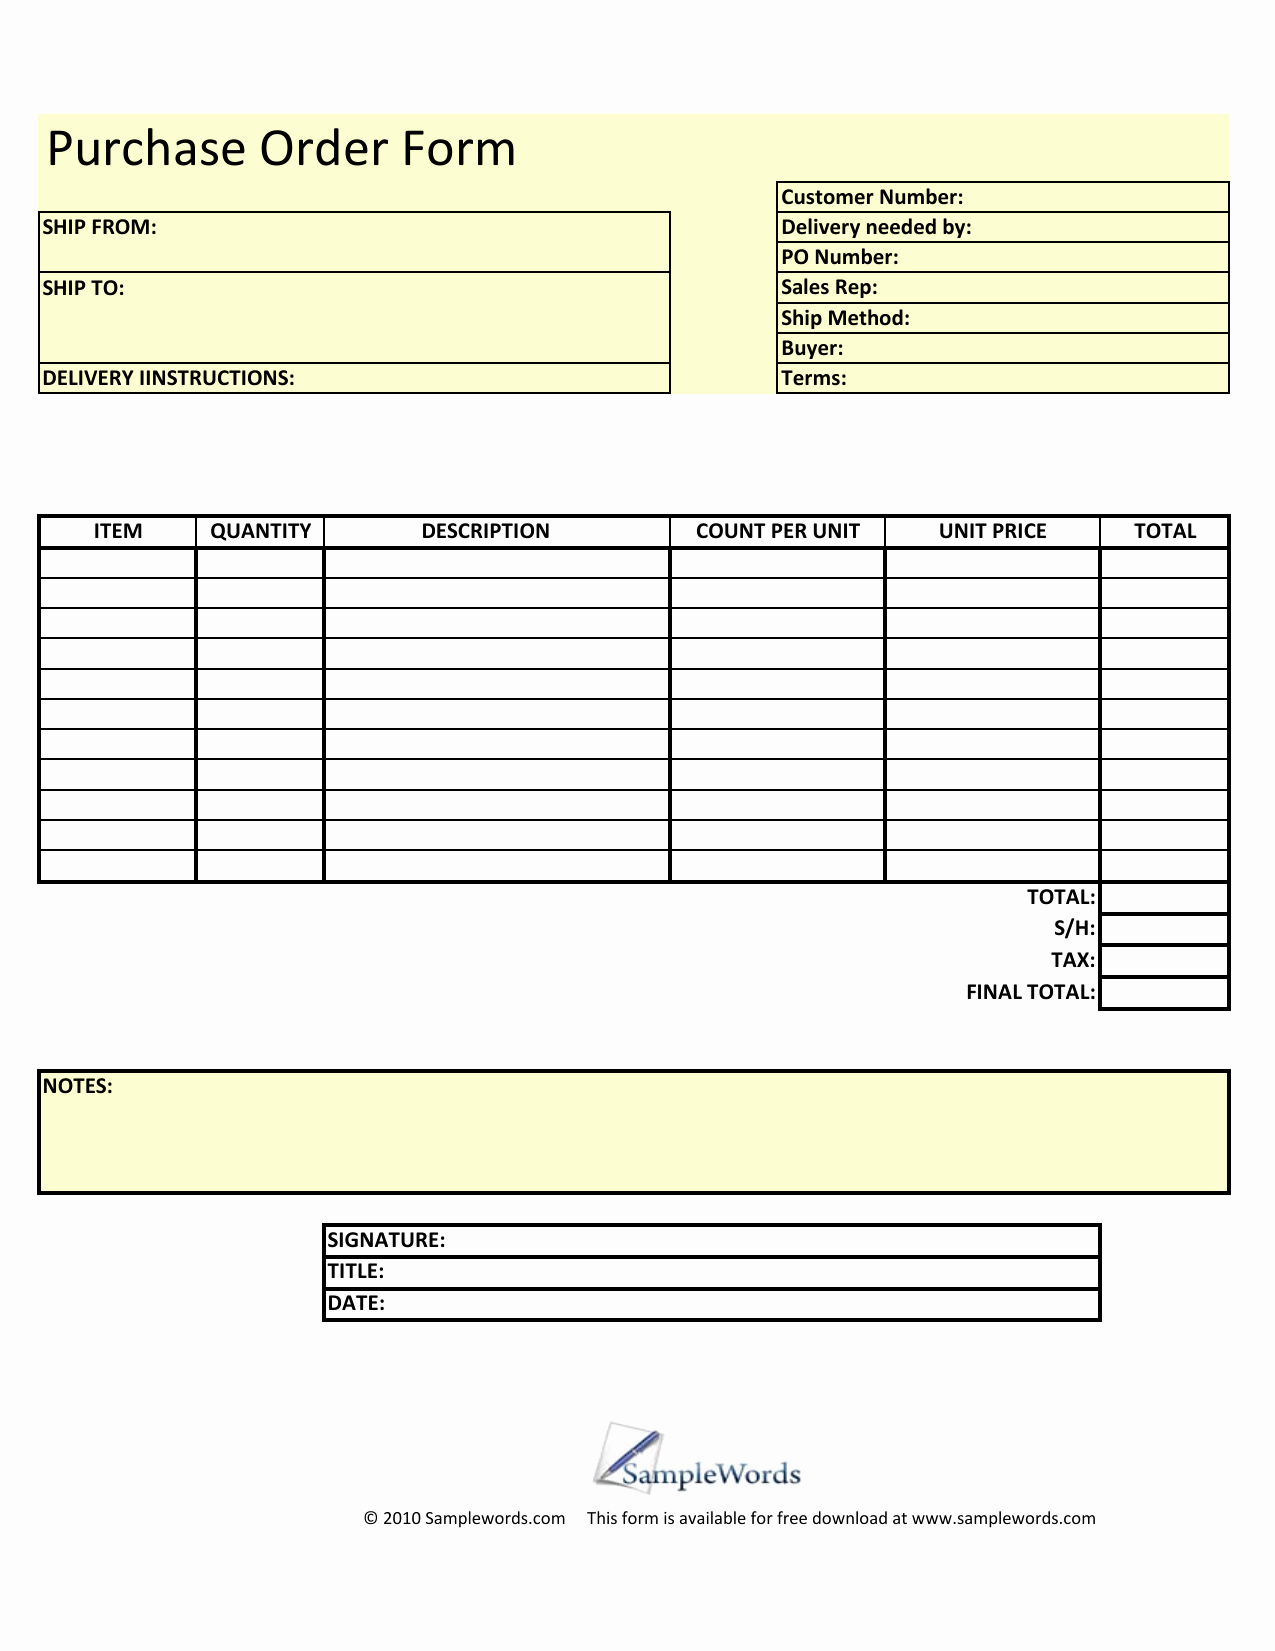 Purchase order Template Pdf Unique Download Blank Purchase order form Template Excel